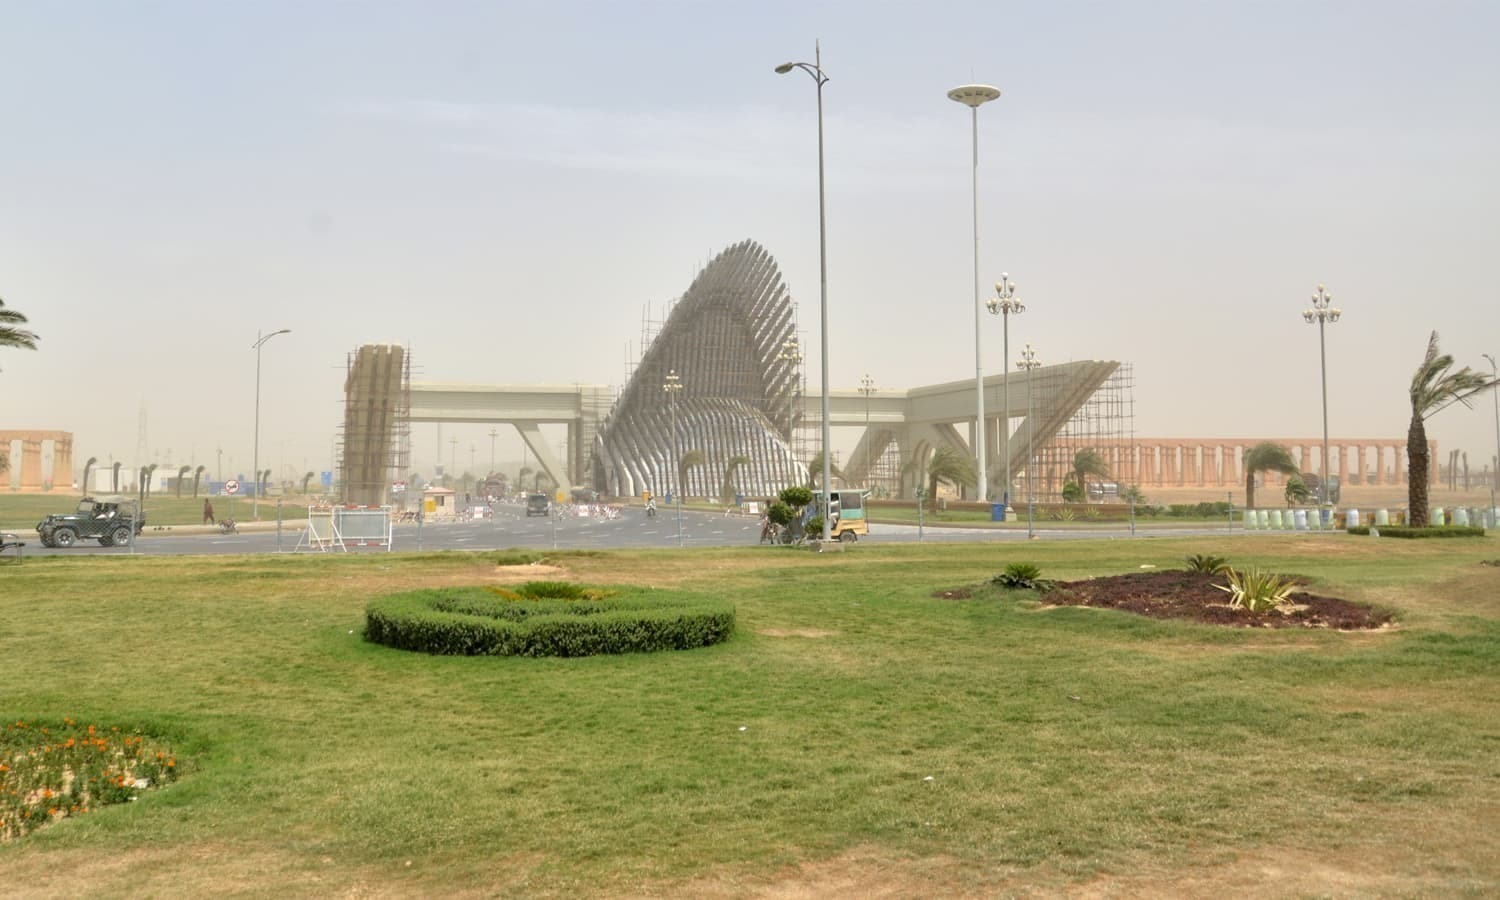 """""""The plea bargain is more than Rs9 billion, which is one of the highest plea bargains in the history of NAB,"""" said a press release issued by the anti-graft watchdog. — Photo courtesy Bahria Town website/File"""